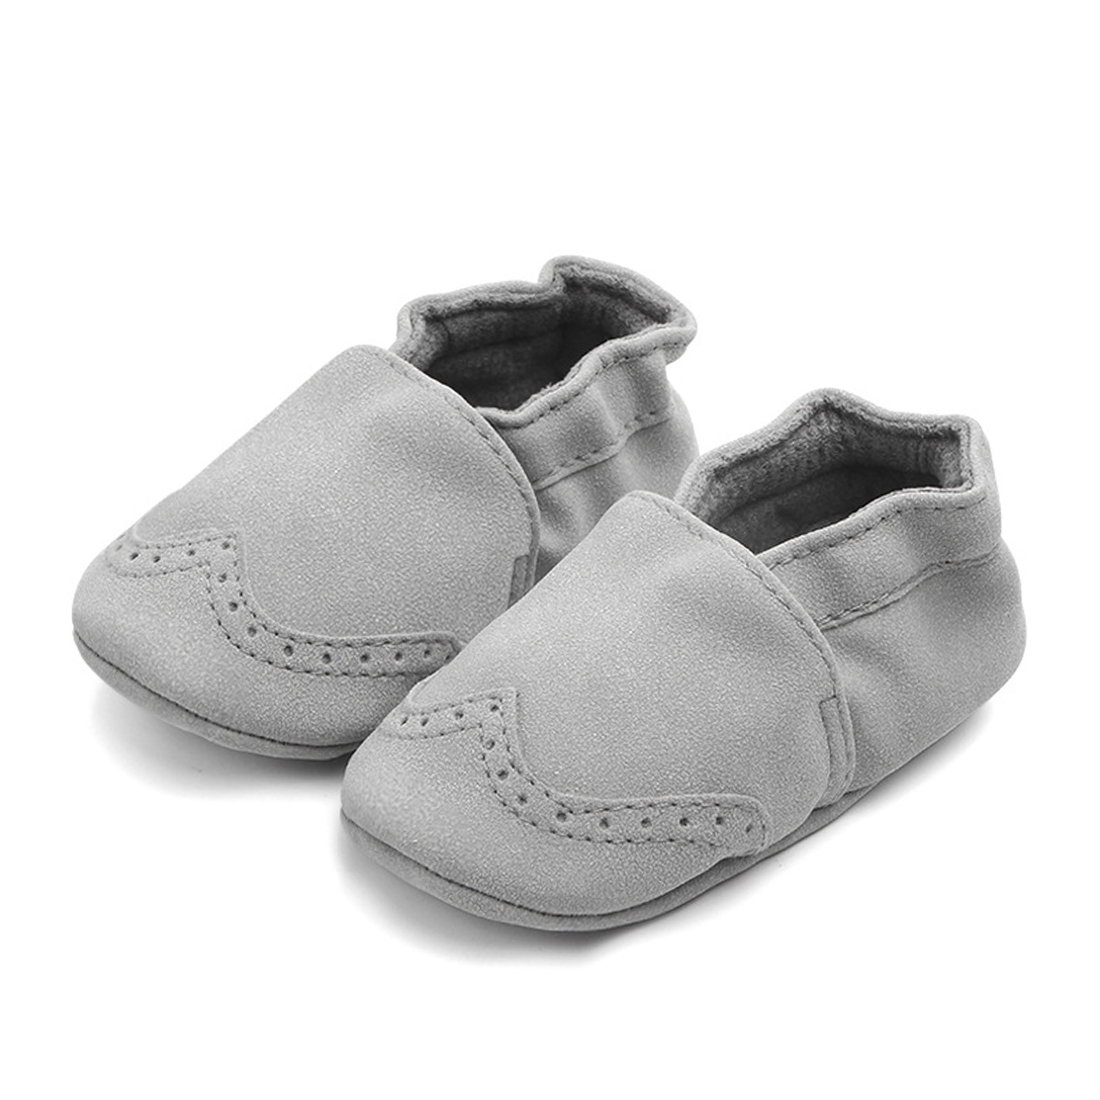 Fashion Baby Boy Shoes for Girl First Walkers Soft Sole Newborn Loafers Infant Slippers Toddler Moccasins Home Shoes 0-18 Months 2015 fashion toddler shoes first walkers baby lace up flowers sapatos soft sole infants girl shoes